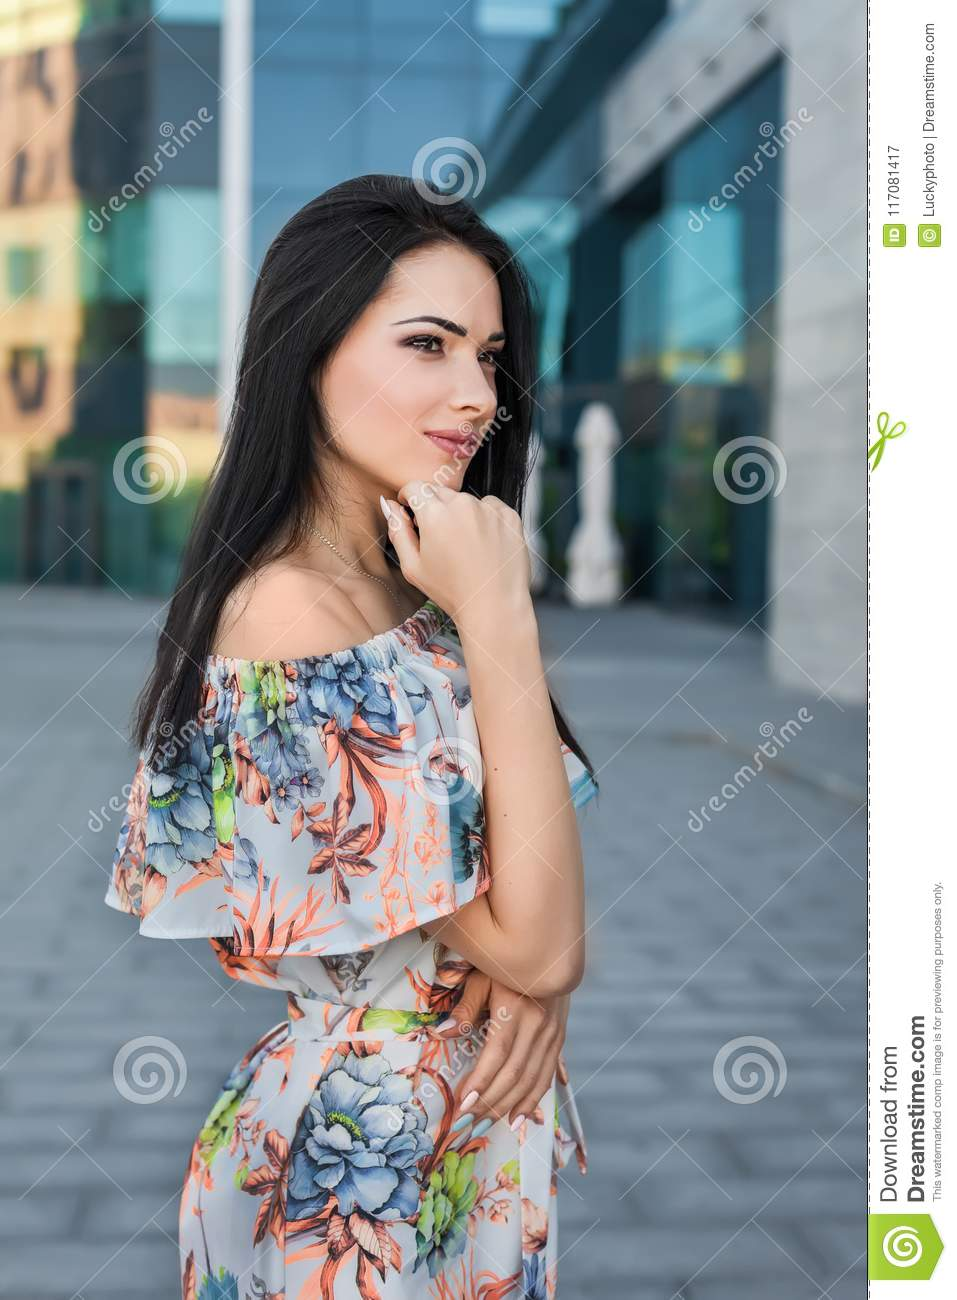 Nice Girl In The Street Stock Image Image Of Attractive 117081417